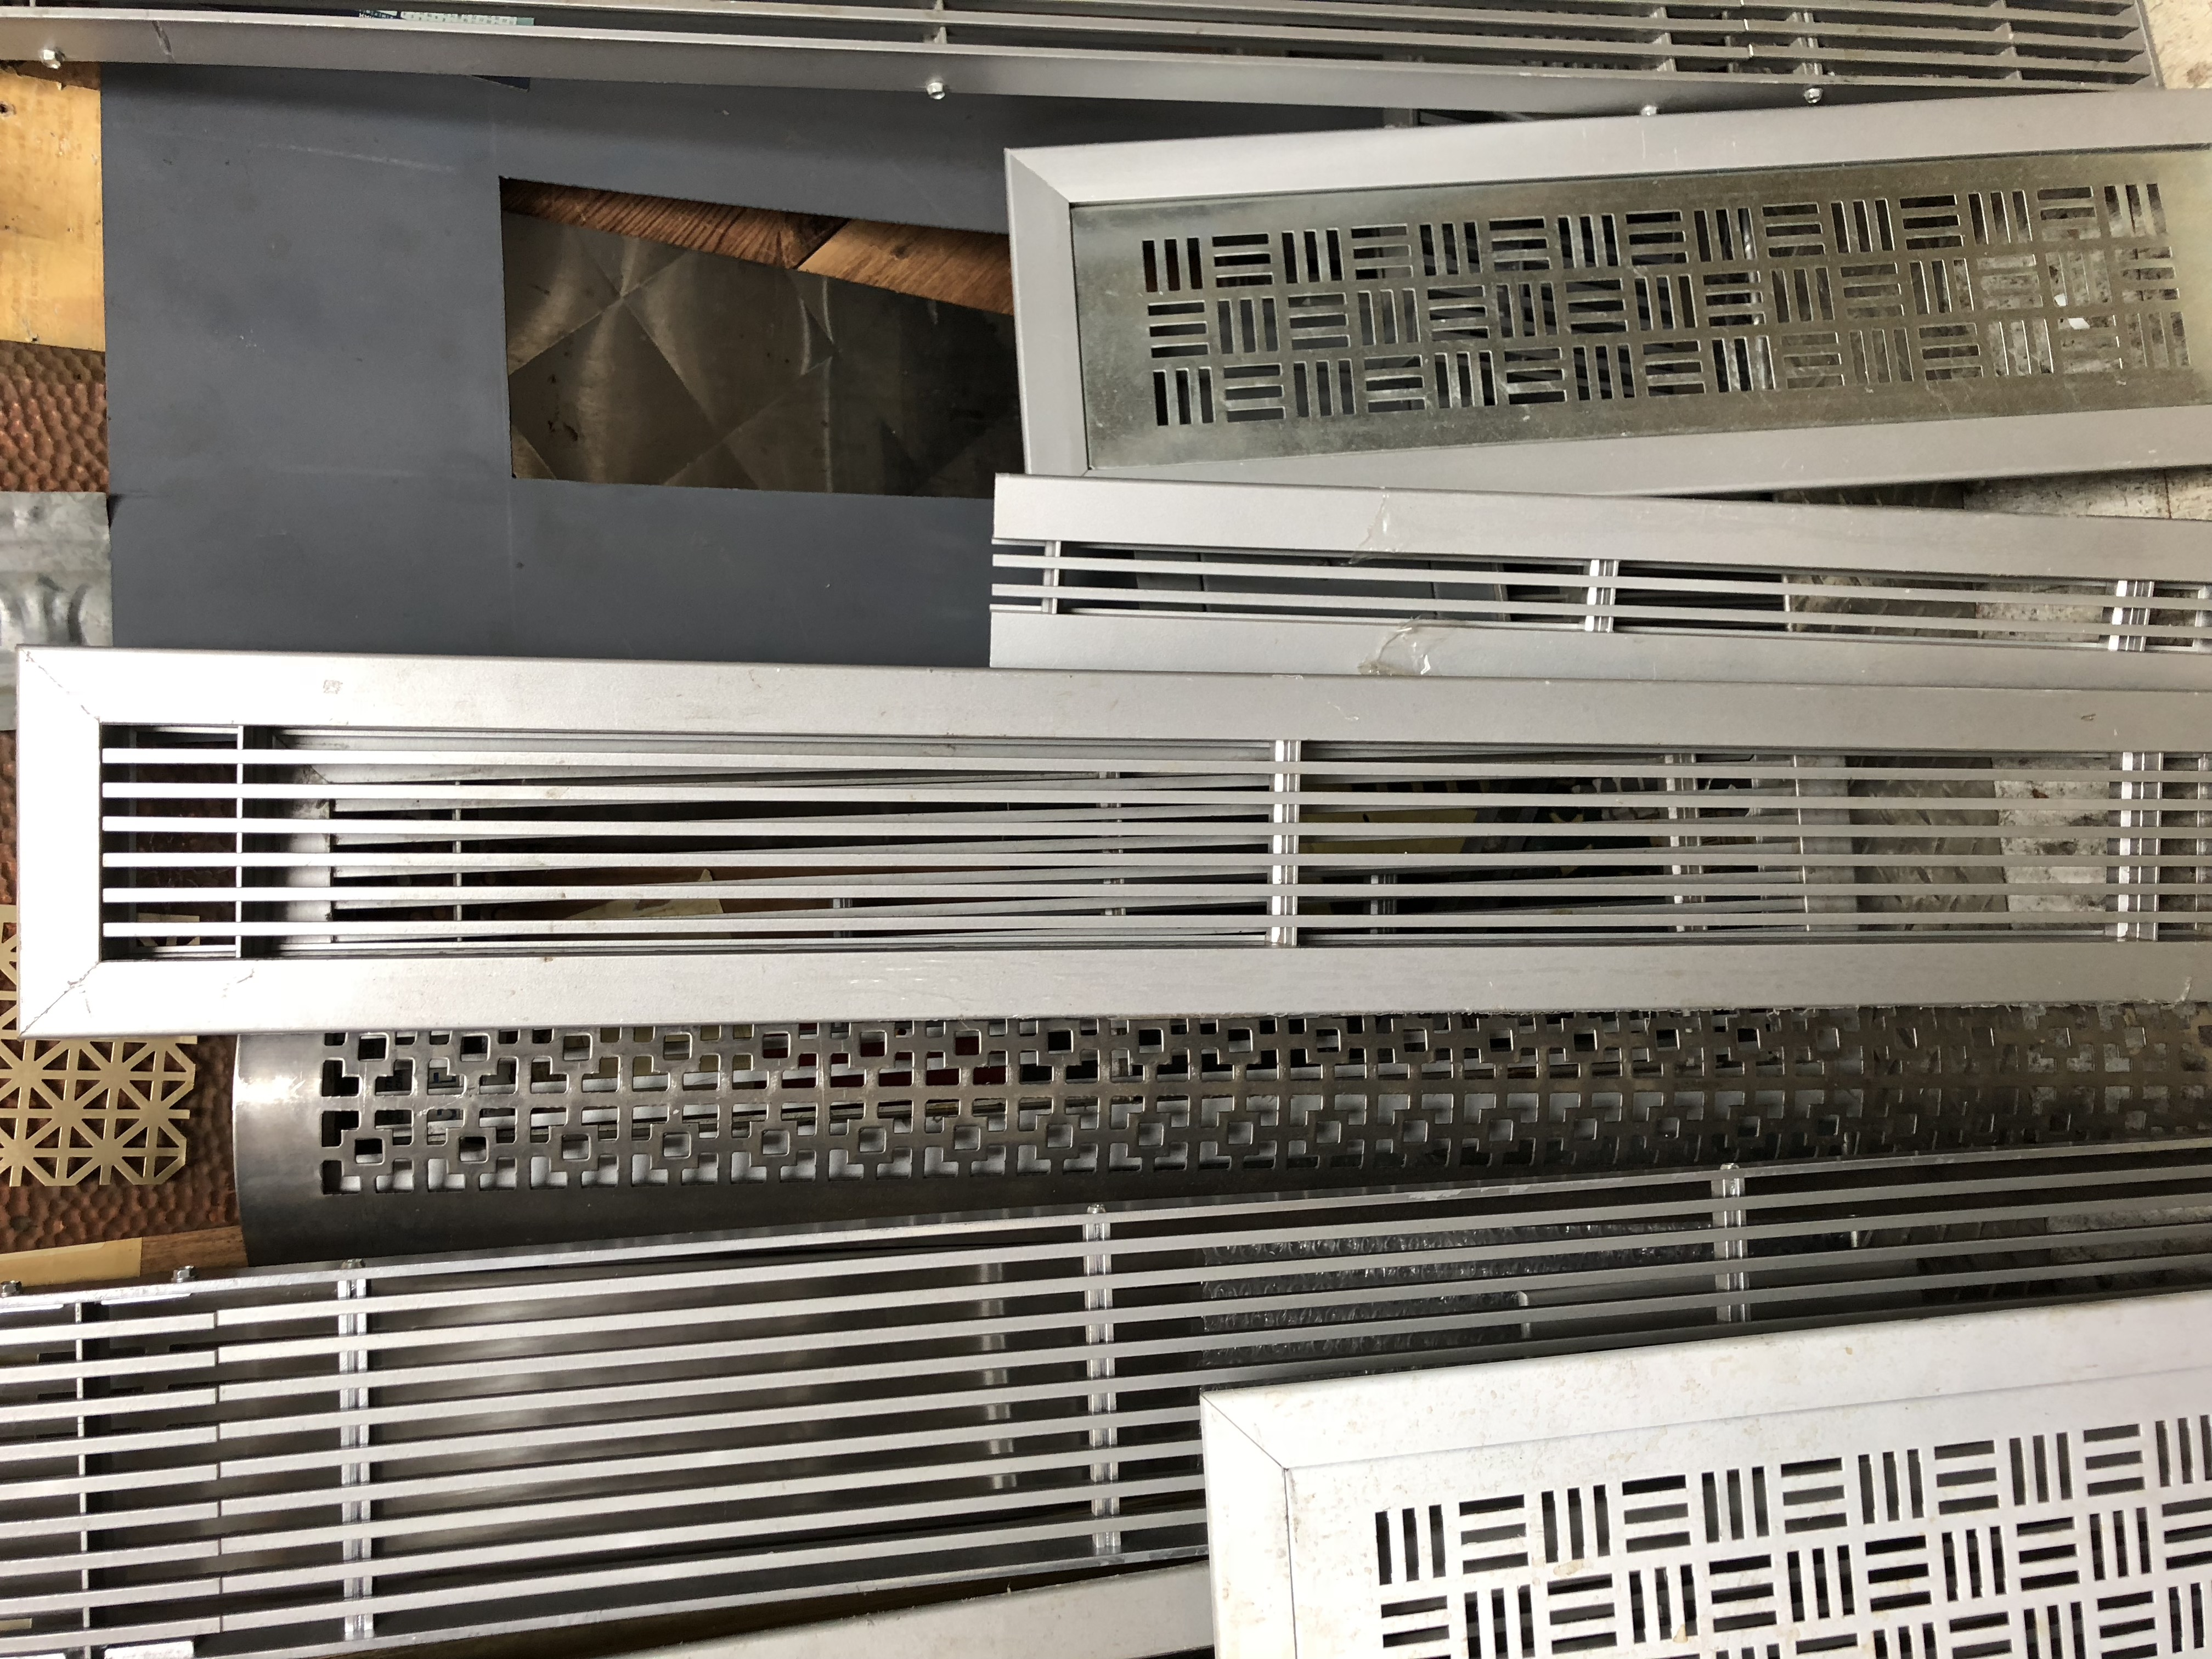 linear and perforated grilles